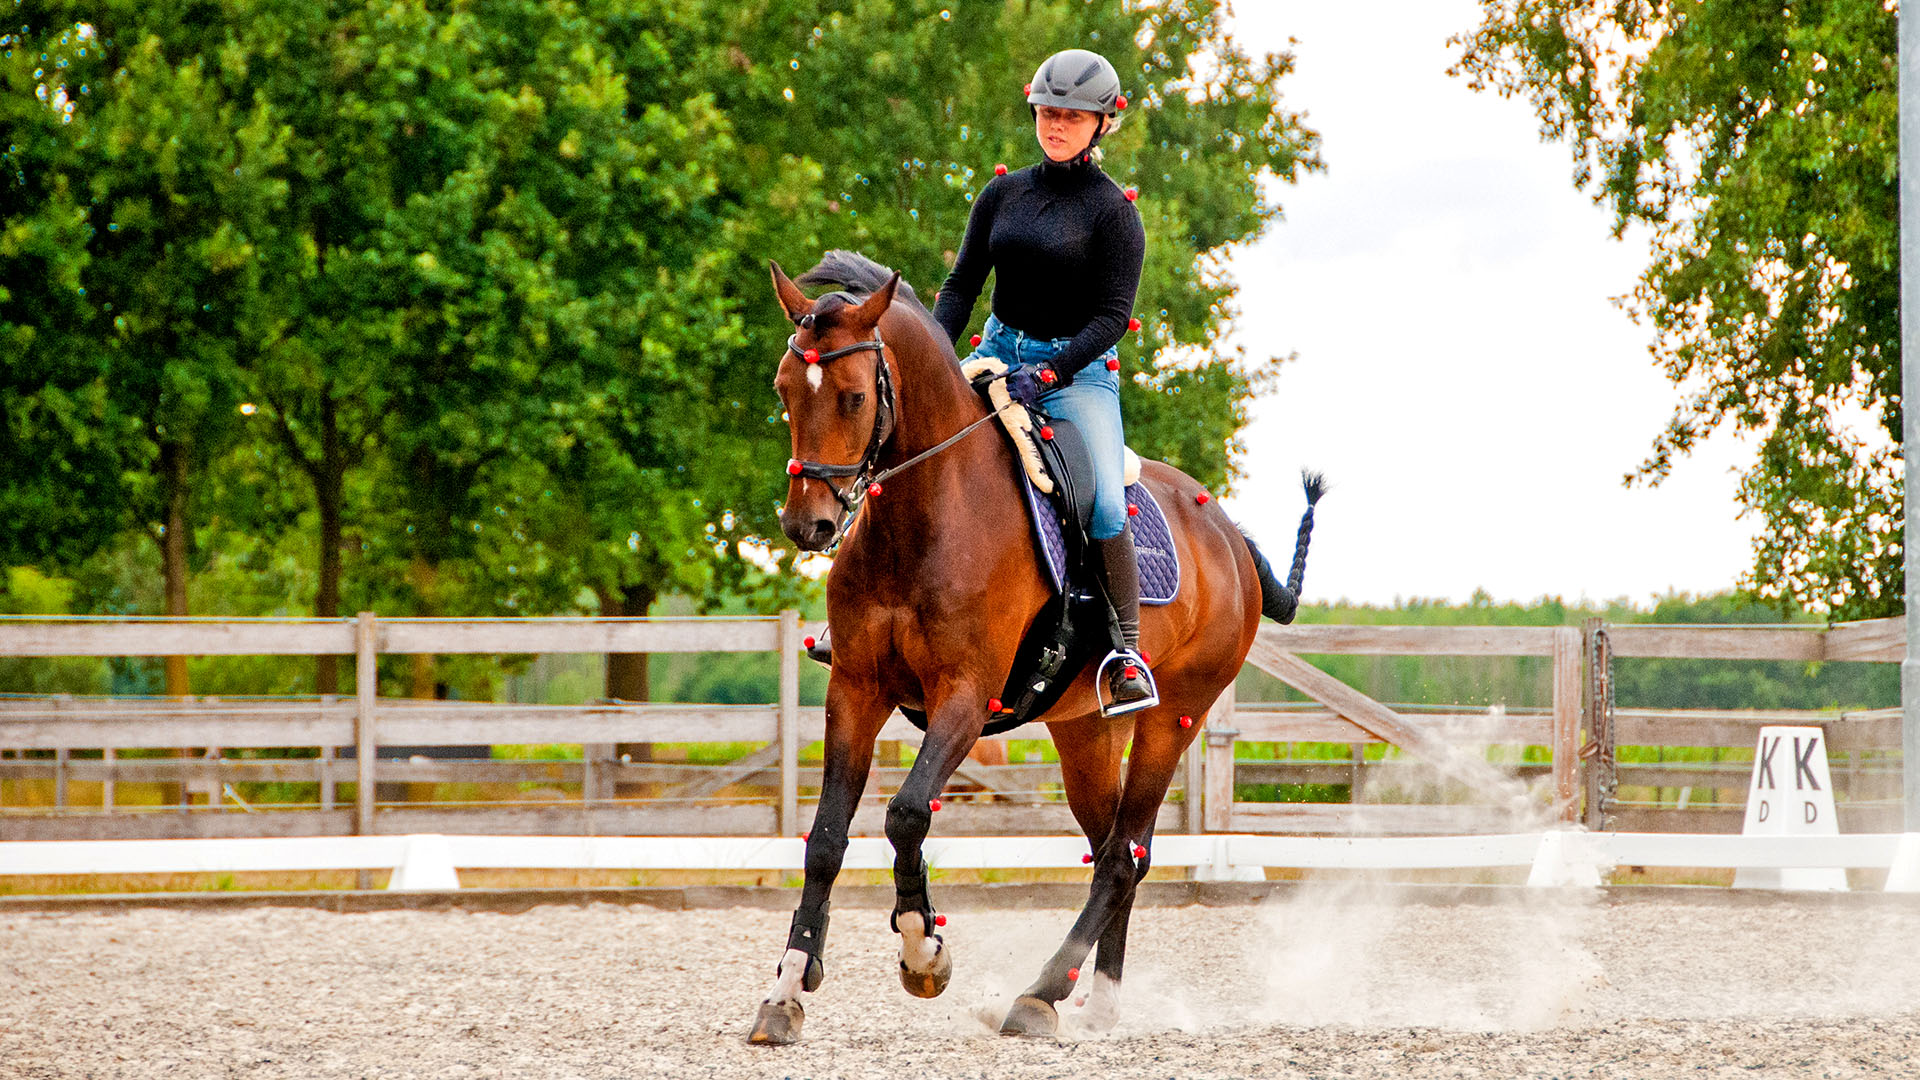 What effect do you as a rider have on the symmetrical movements of your horse?